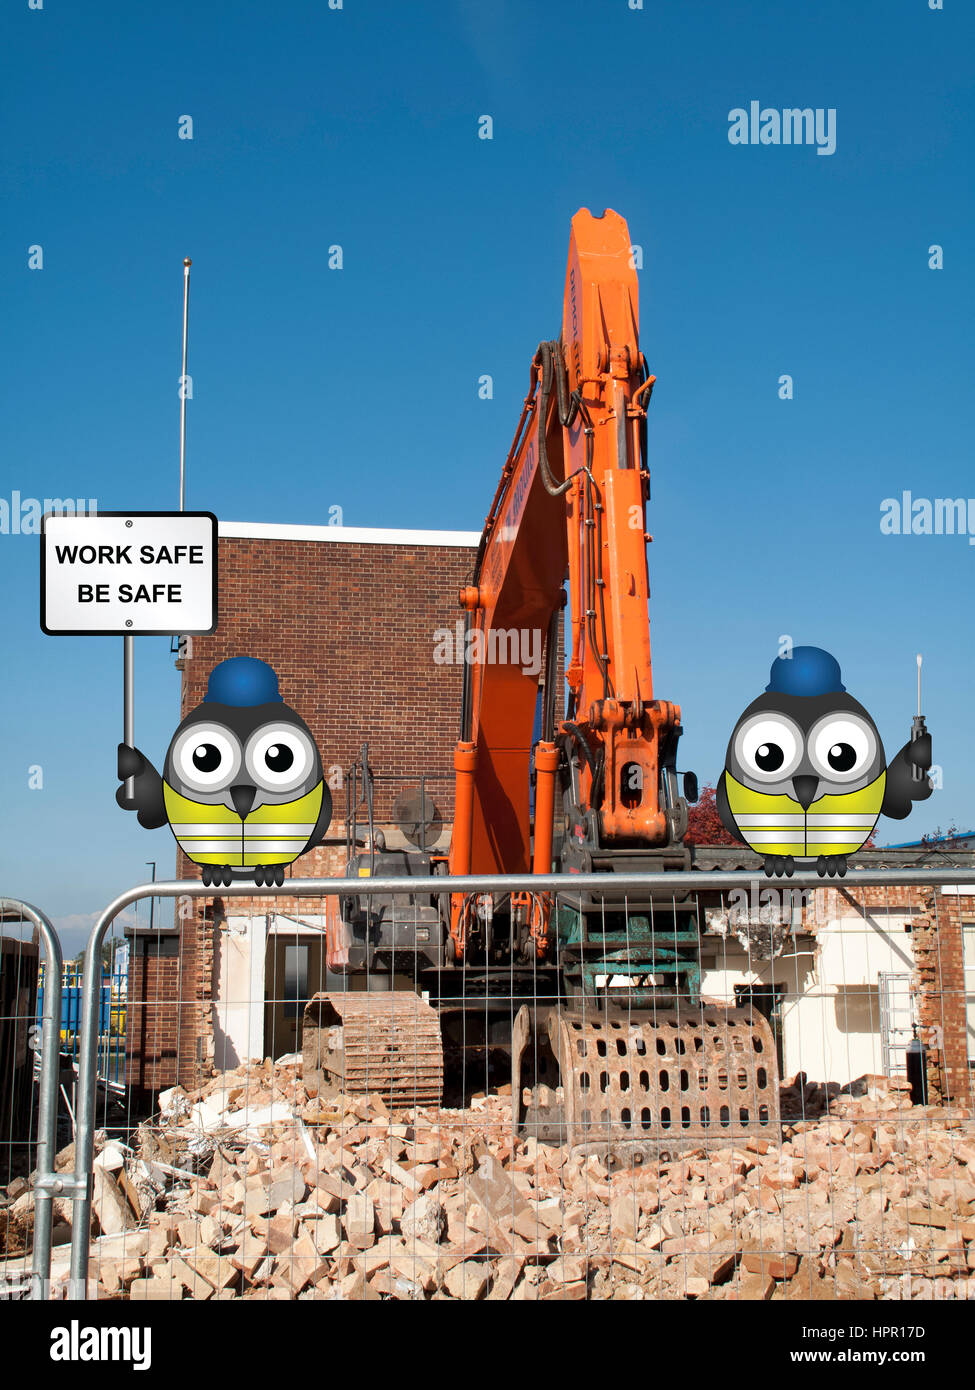 J mould Demolition Company based in Reading Berkshire, demolition of building with work safe message Stock Photo